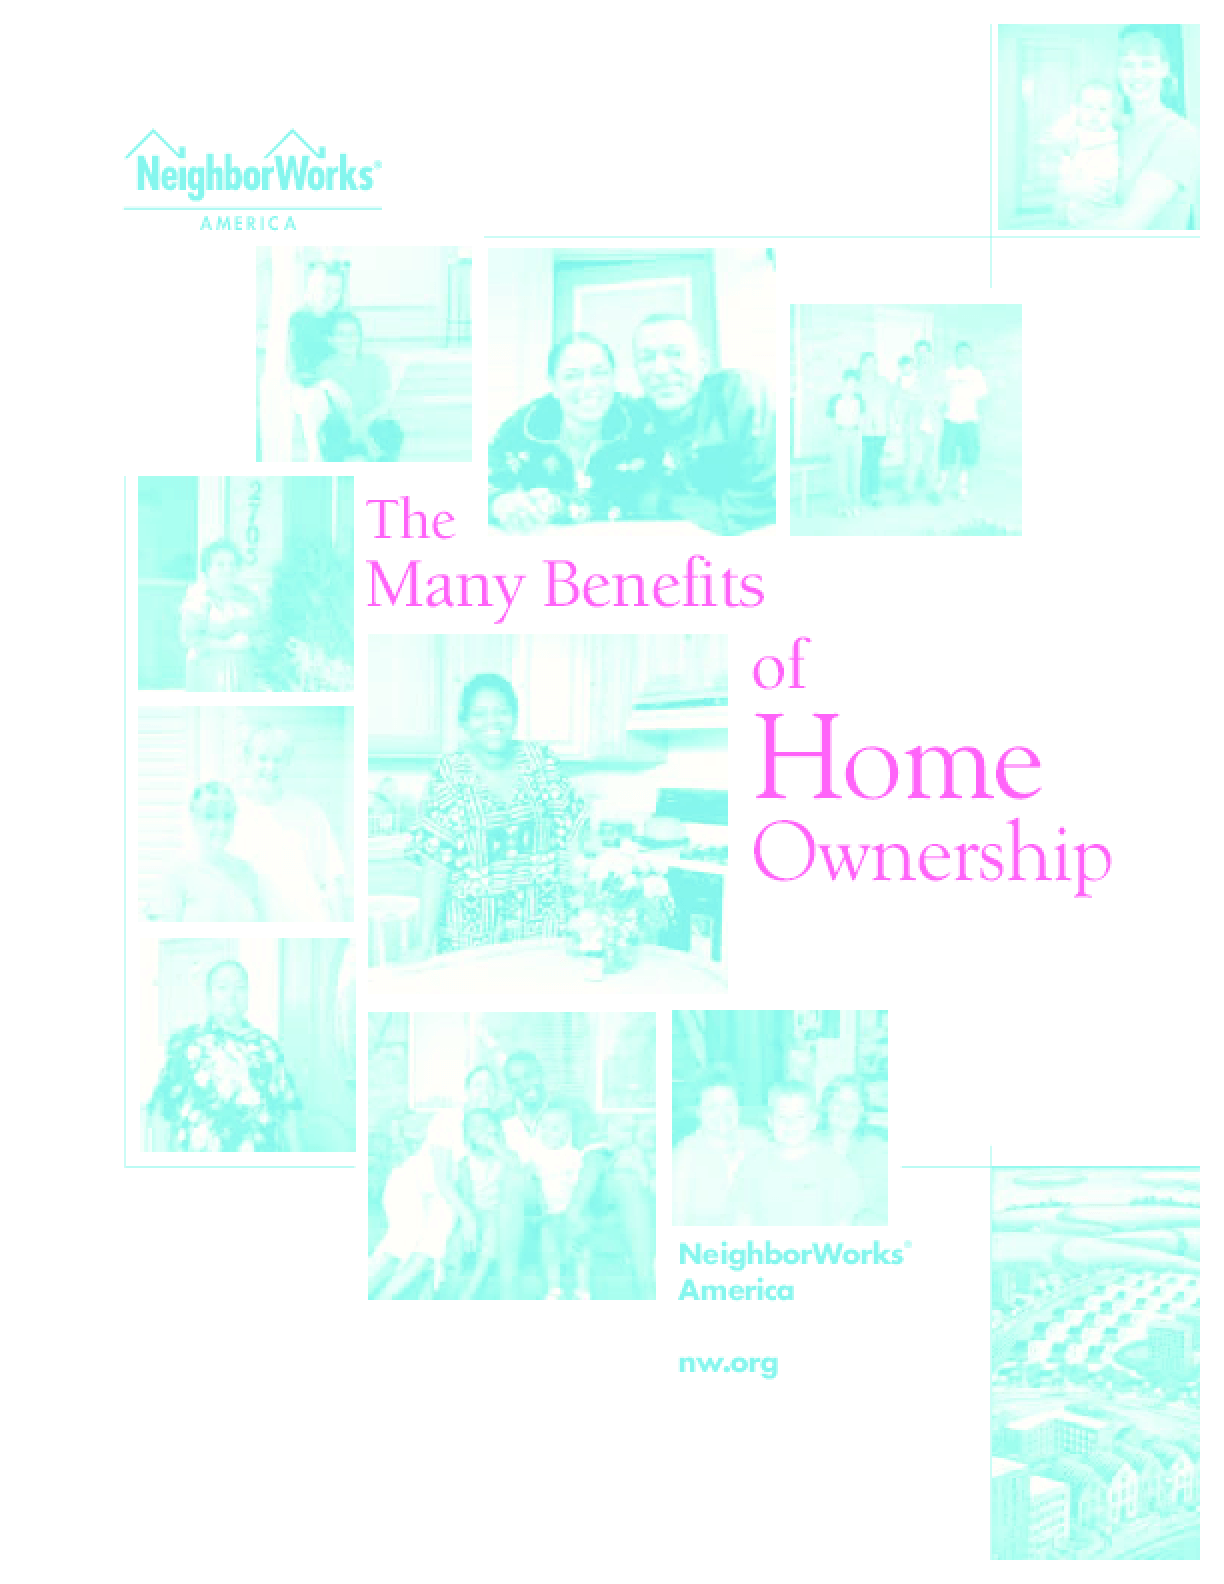 The Many Benefits of Homeownership